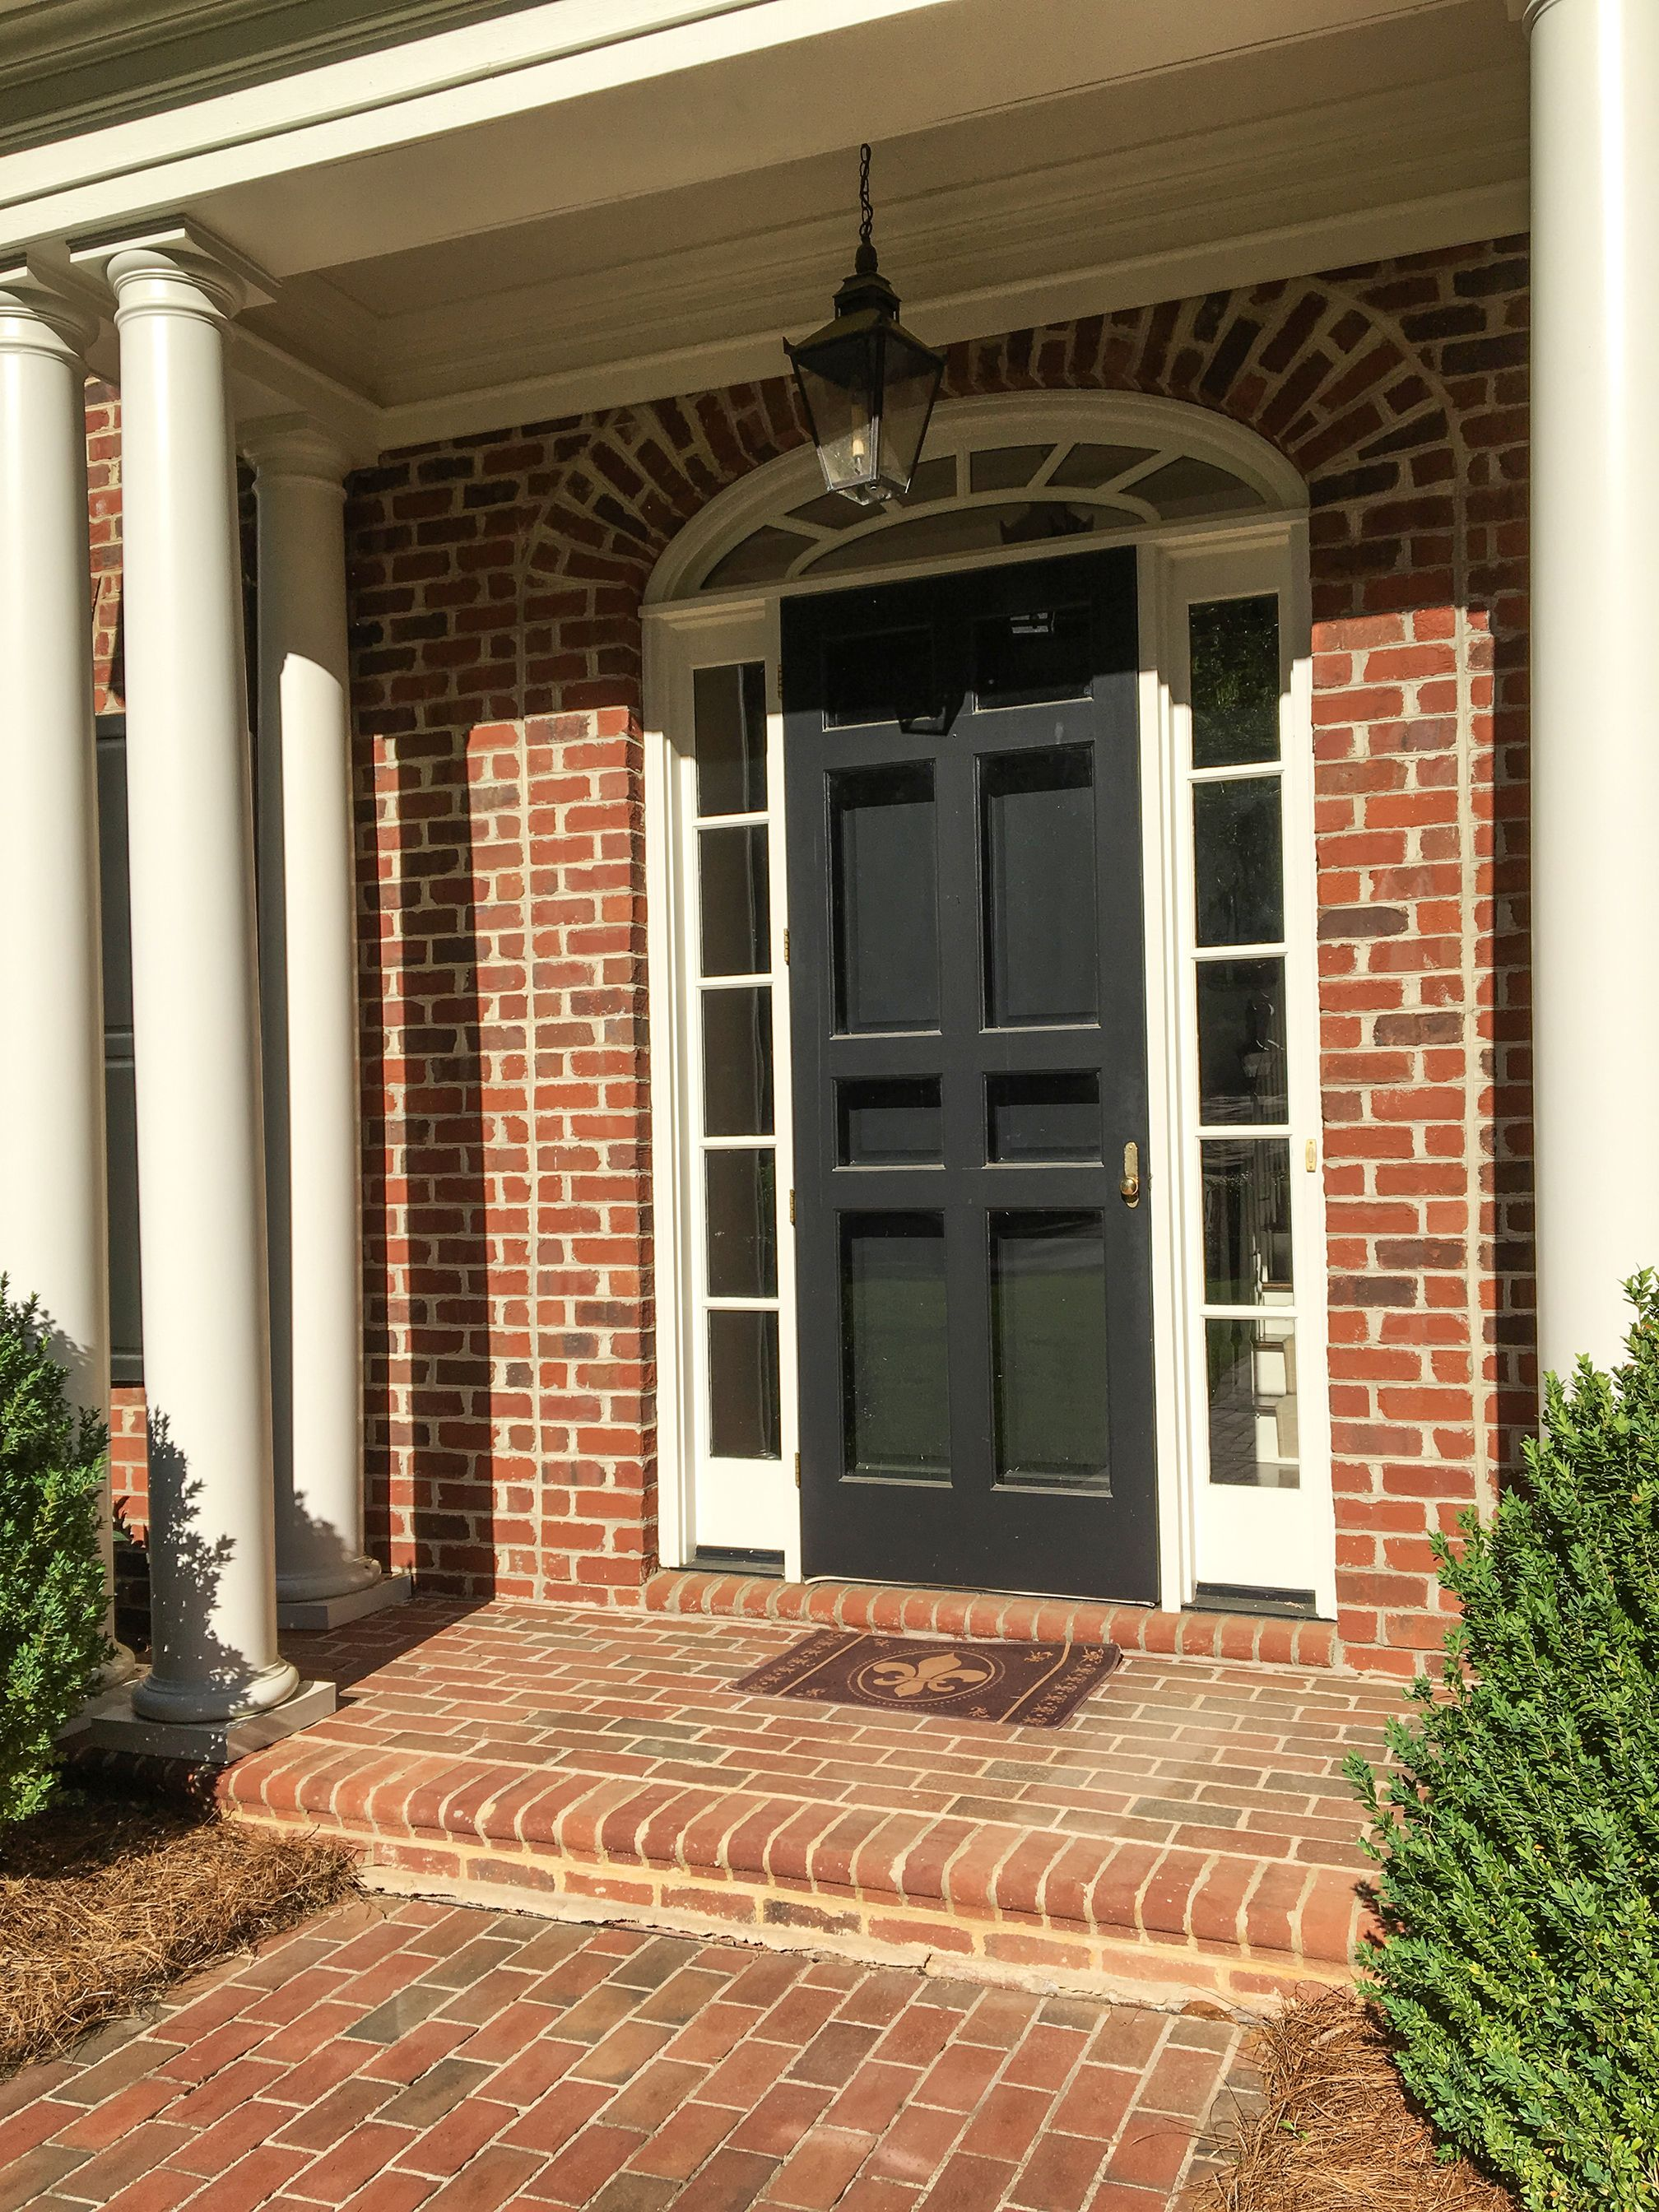 Arched lunar doorway for the perfect brick Greek Revival home.